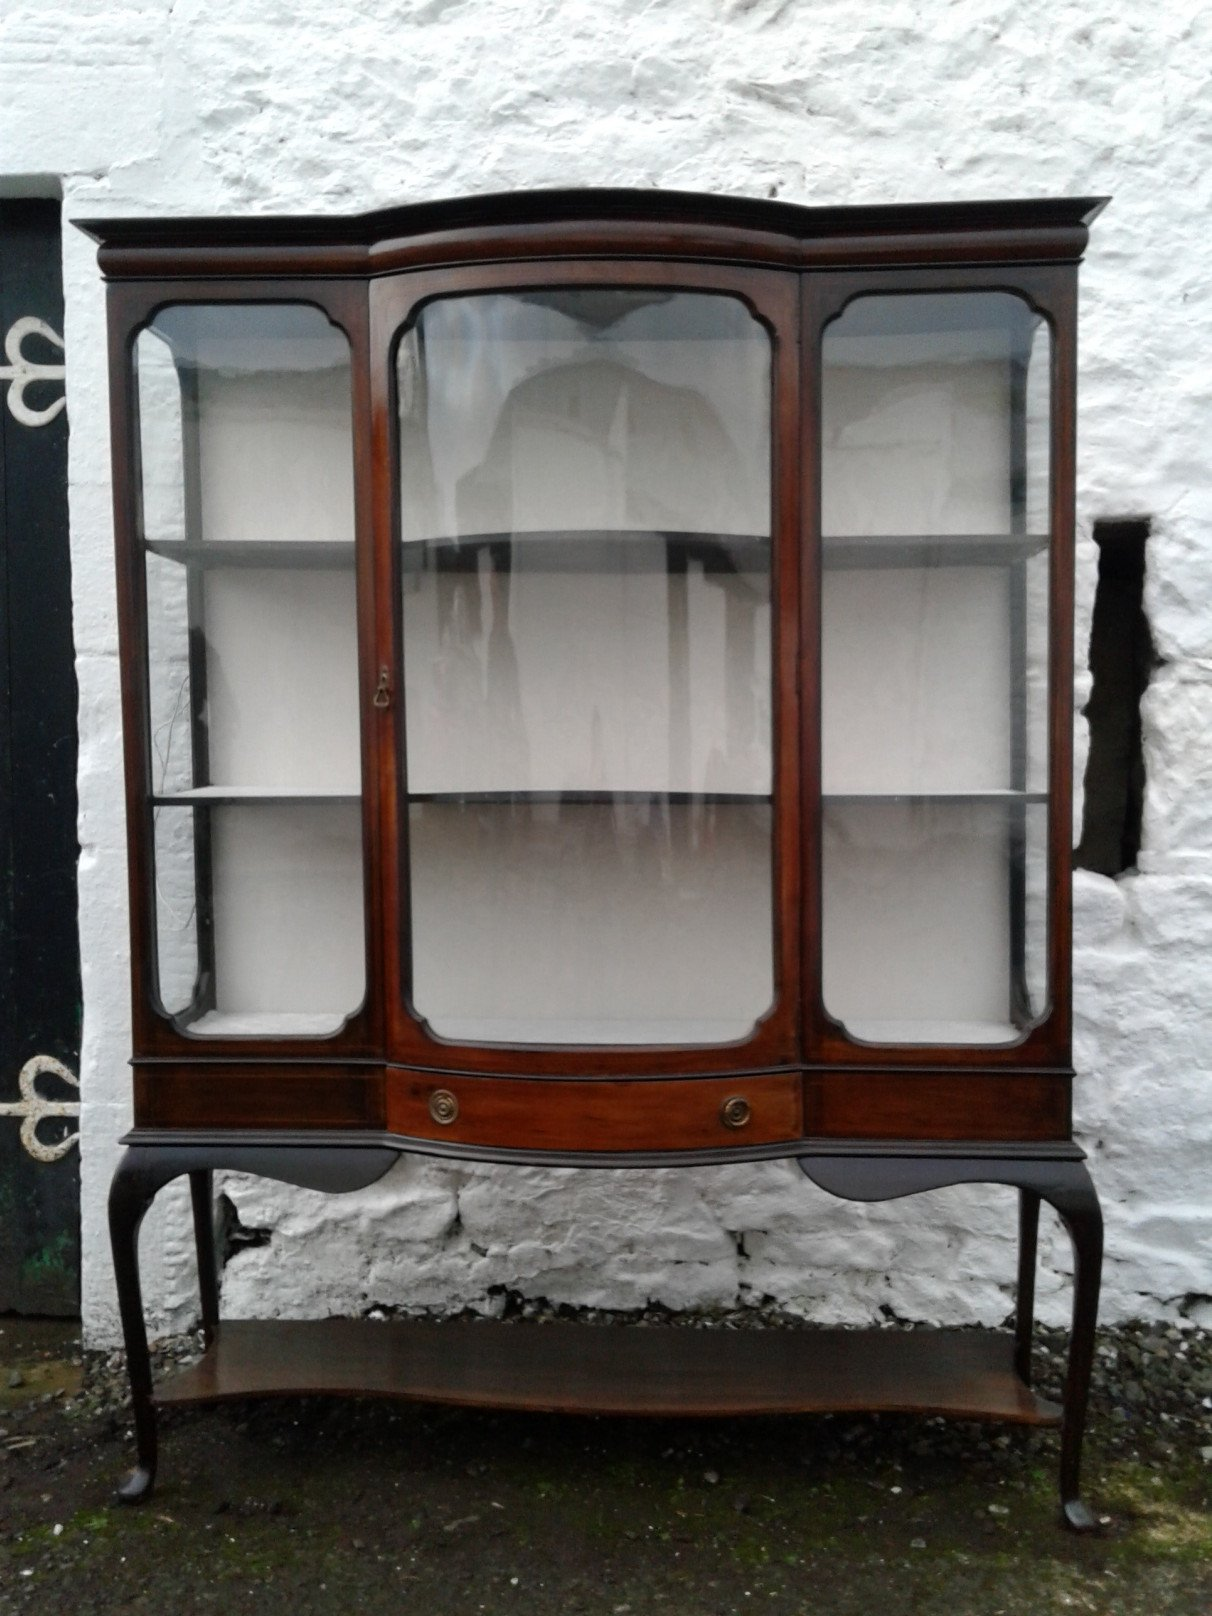 Edwardian mahogany bowfront display cabinet